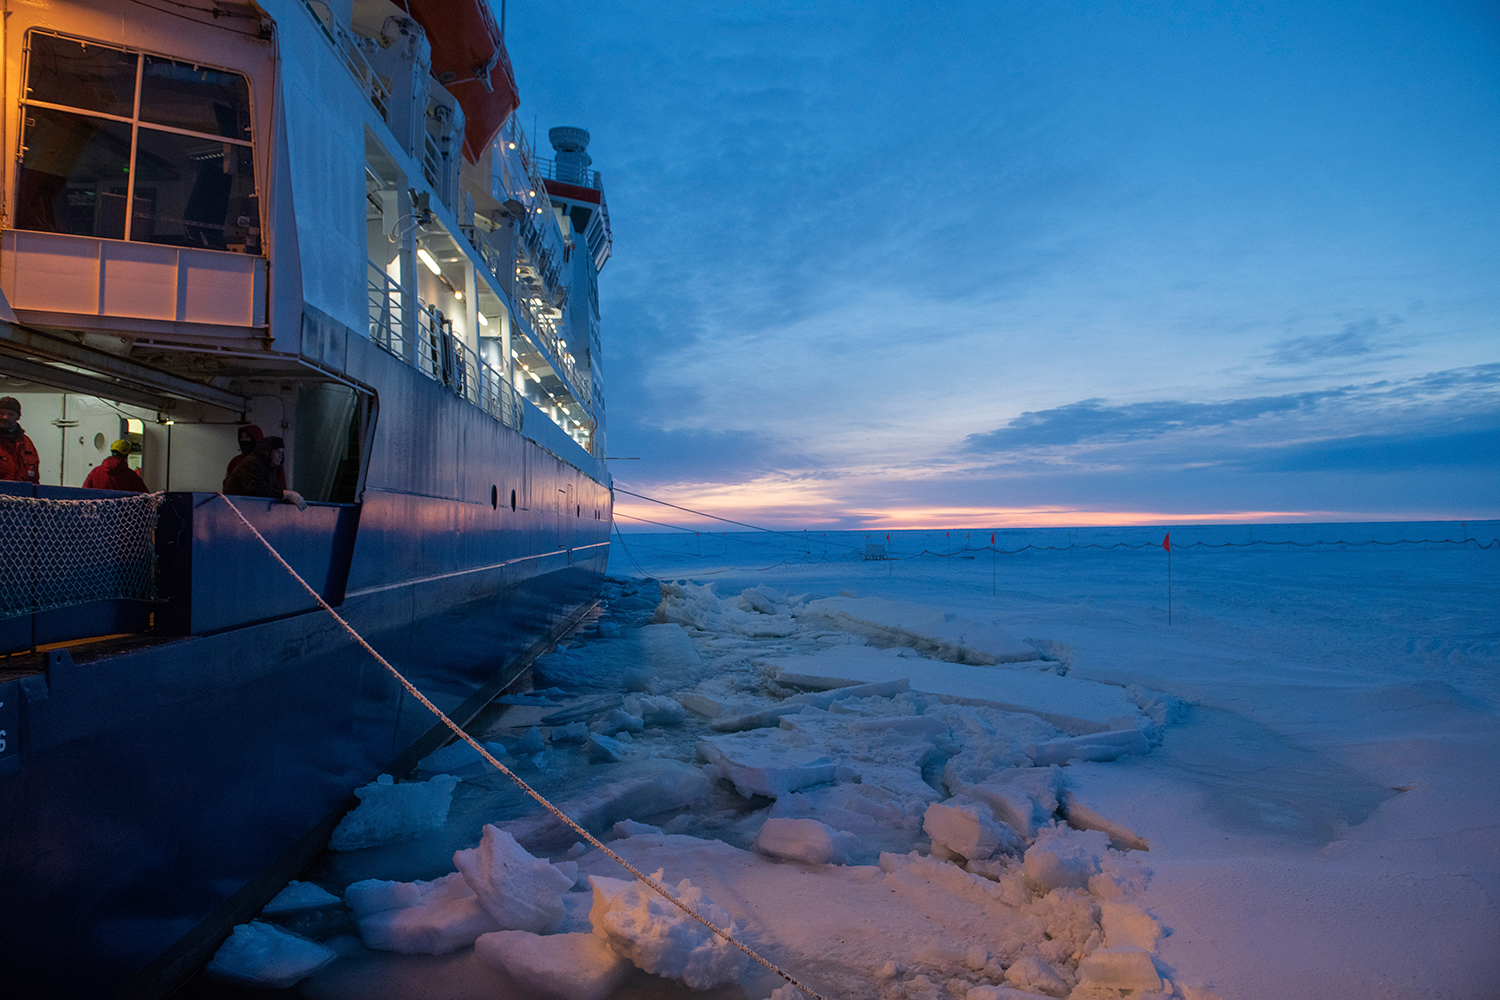 Beautiful sunrise scenery in the Arctic landscape. A giant icebreaker vessel in front is faces the light, stuck in the ice.